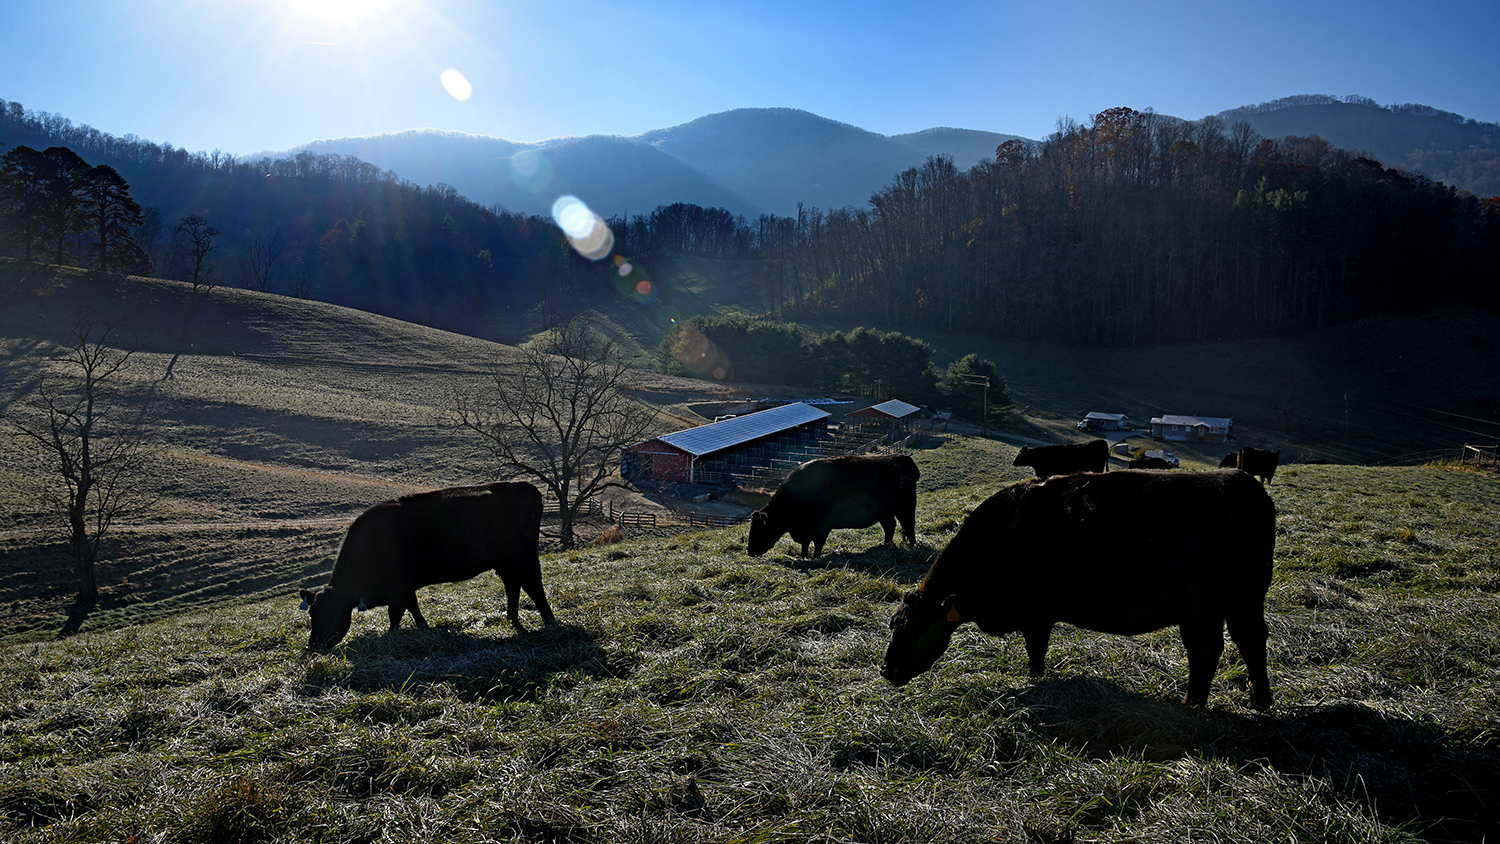 Three cows grazing, with mountains in the background